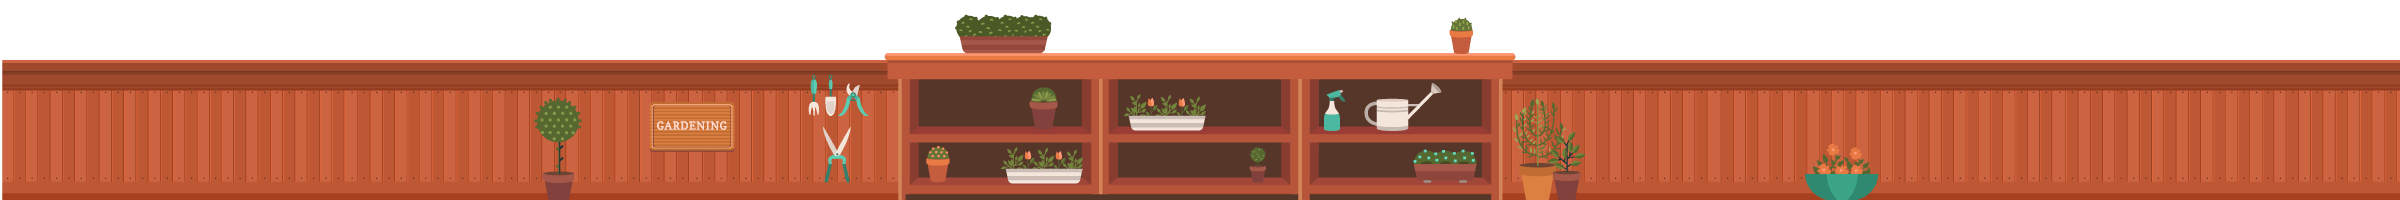 Illustration of a Garden Center counter